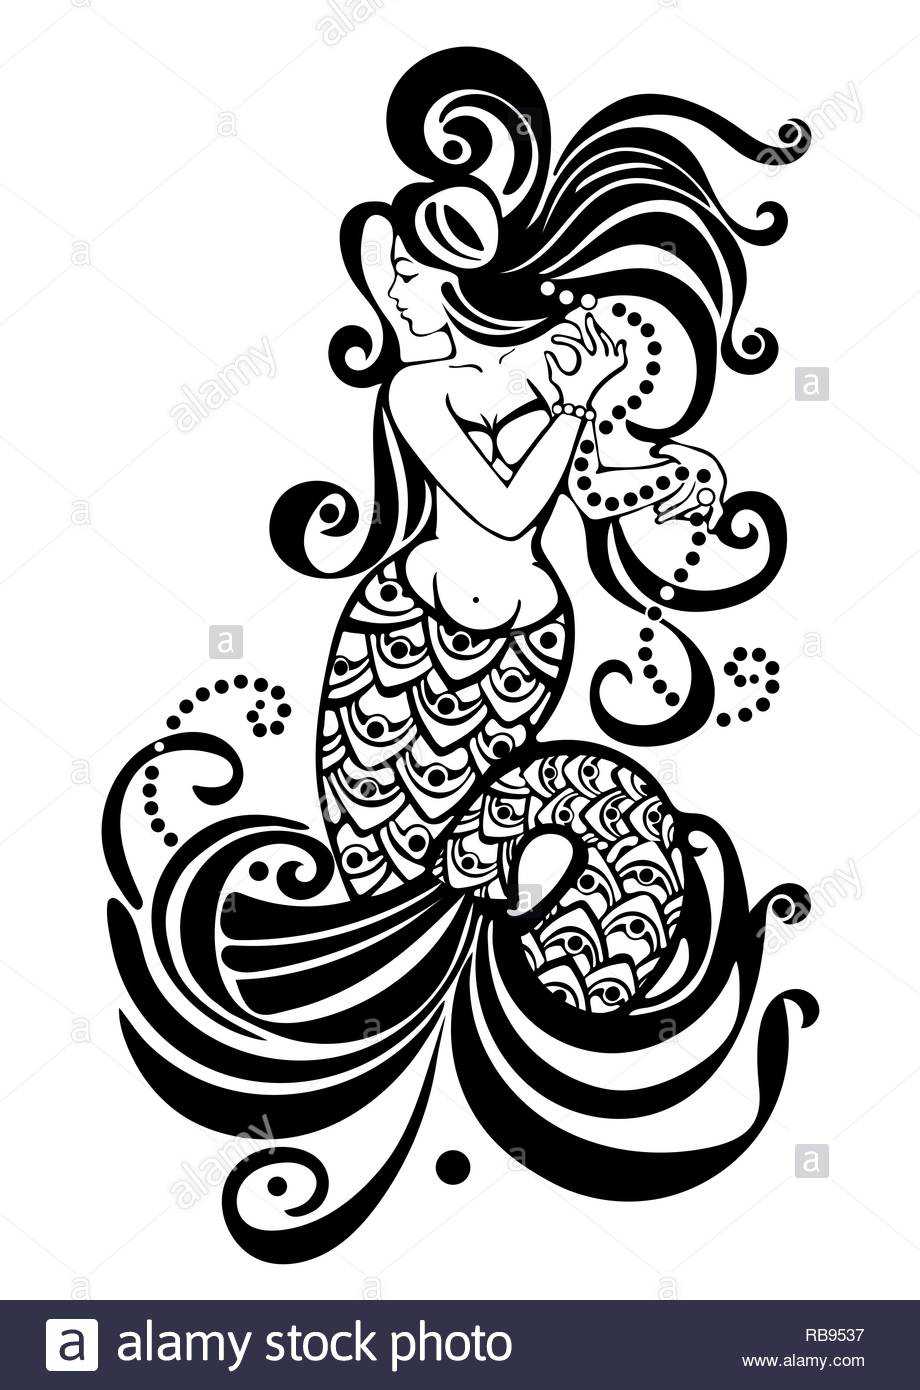 Mermaid Black And White Drawing Tattoo Design Mythical